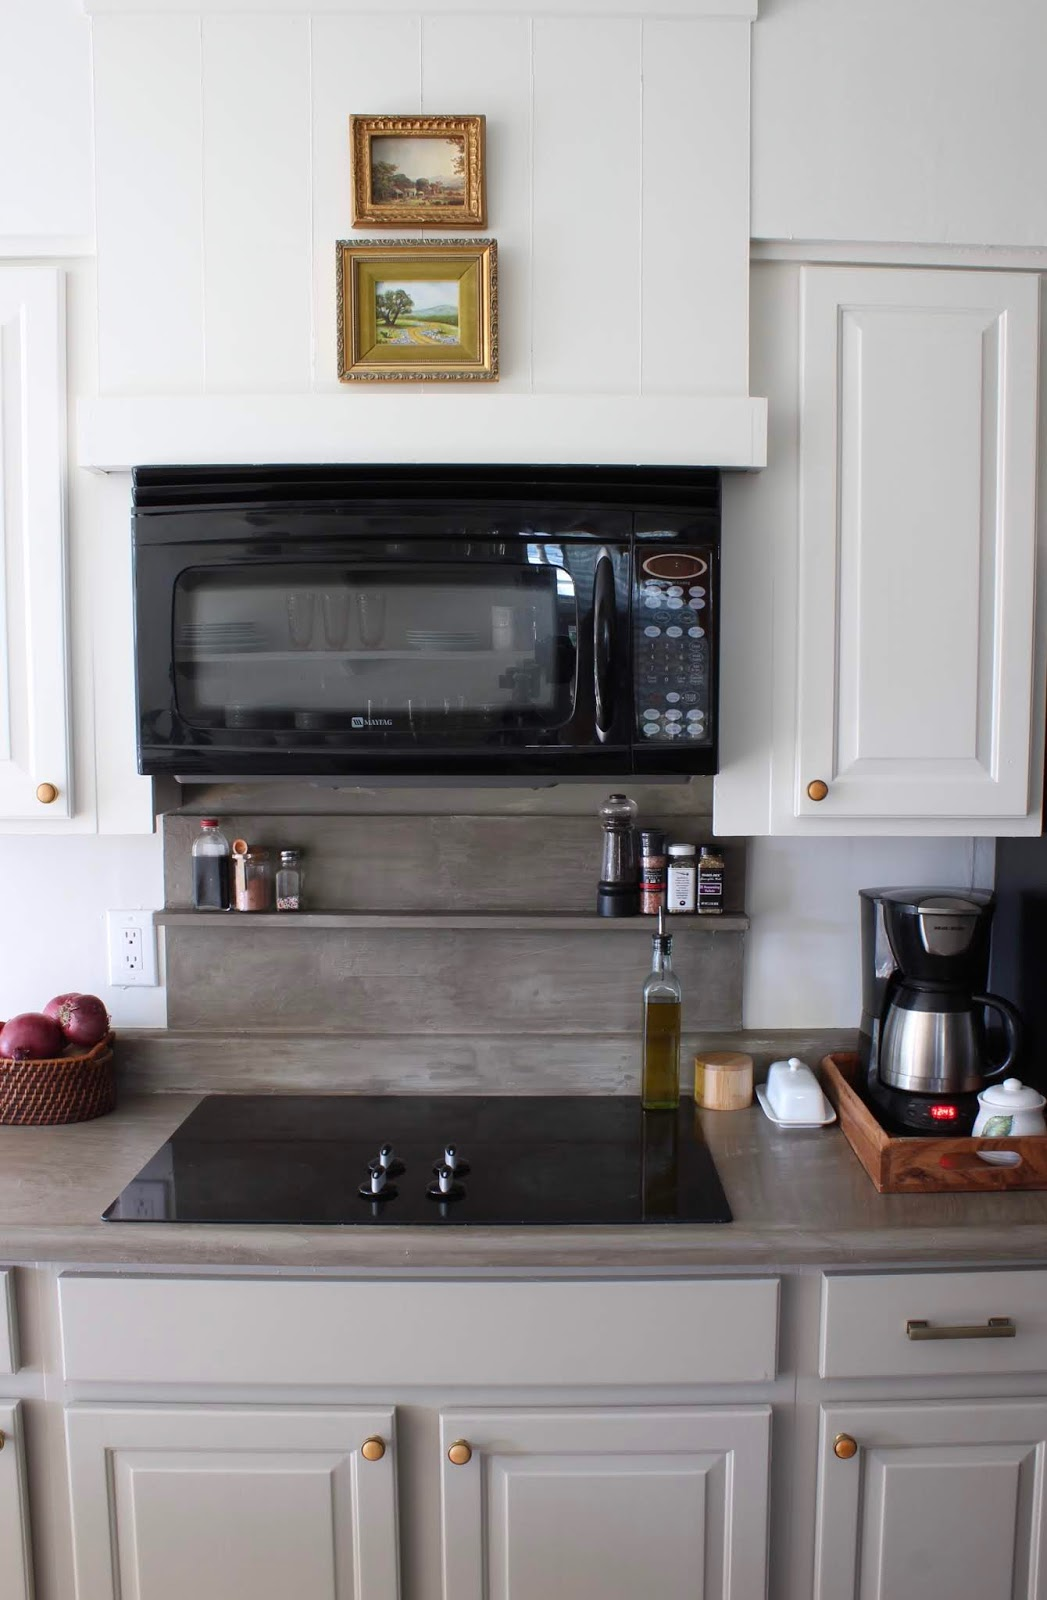 One room challenge budget kitchen makeover: add vent hood cover above microwave. Concrete ledge for spices | House Homemade